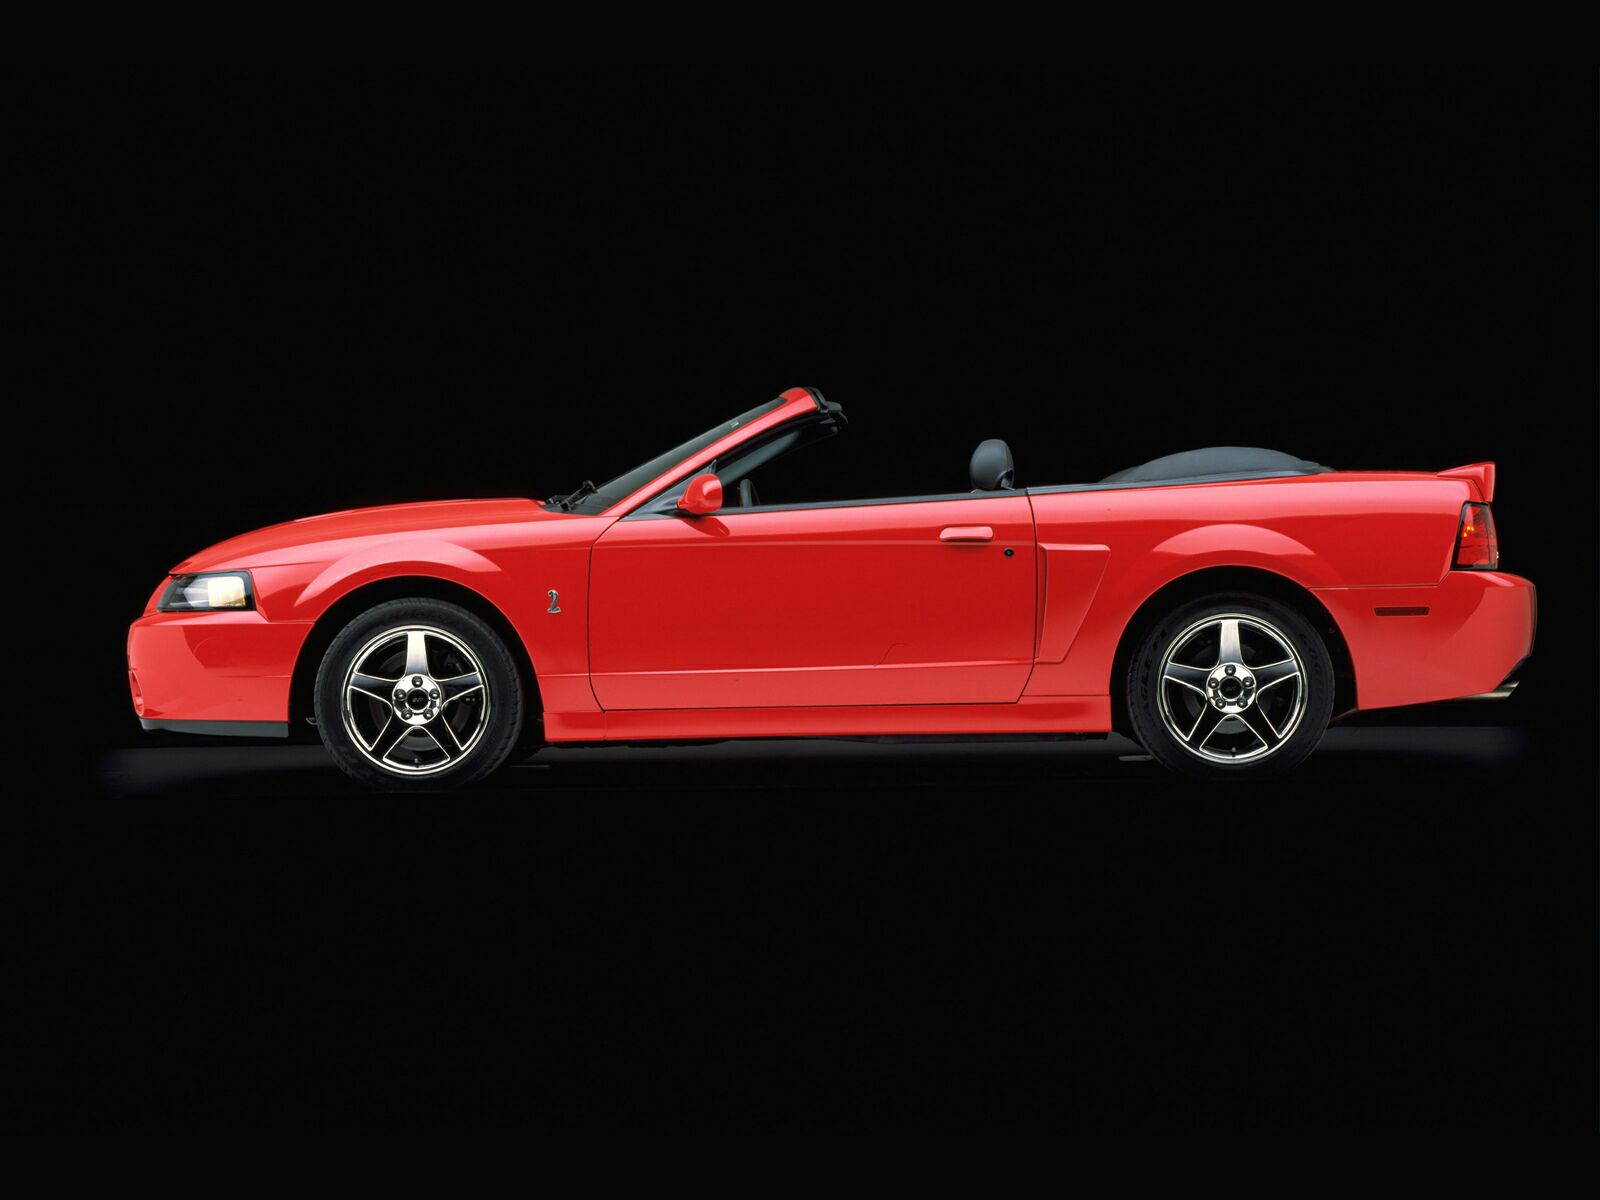 Ford Mustang Cobra photo 10618